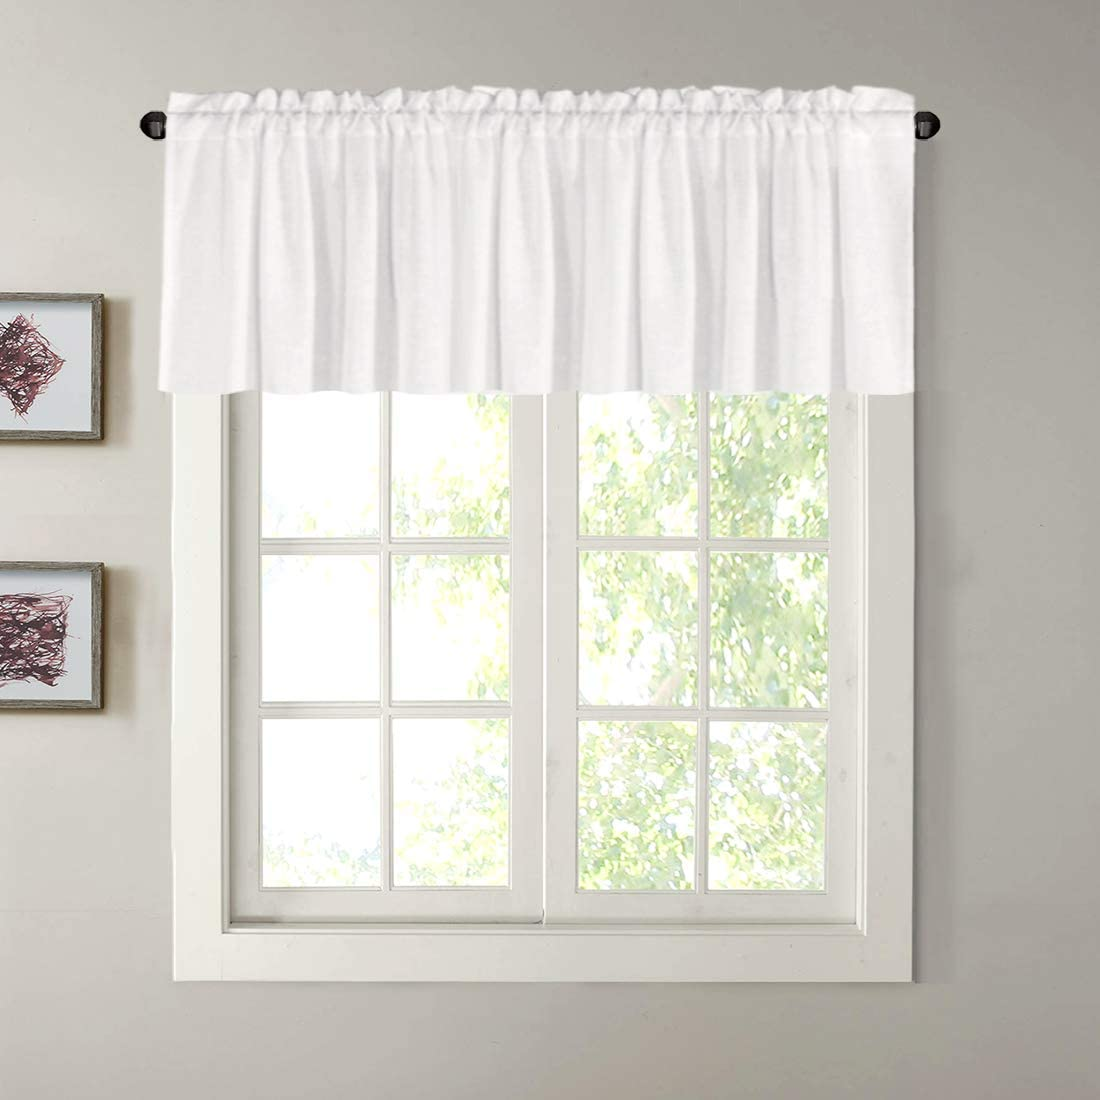 """H.VERSAILTEX Natural Linen Curtain Valances for Kitchen Window/Living Room/Bathroom Privacy Added Rod Pocket Home Decoration Small Curtain, 52"""" W x 18"""" L, Off White, 1 Panel"""